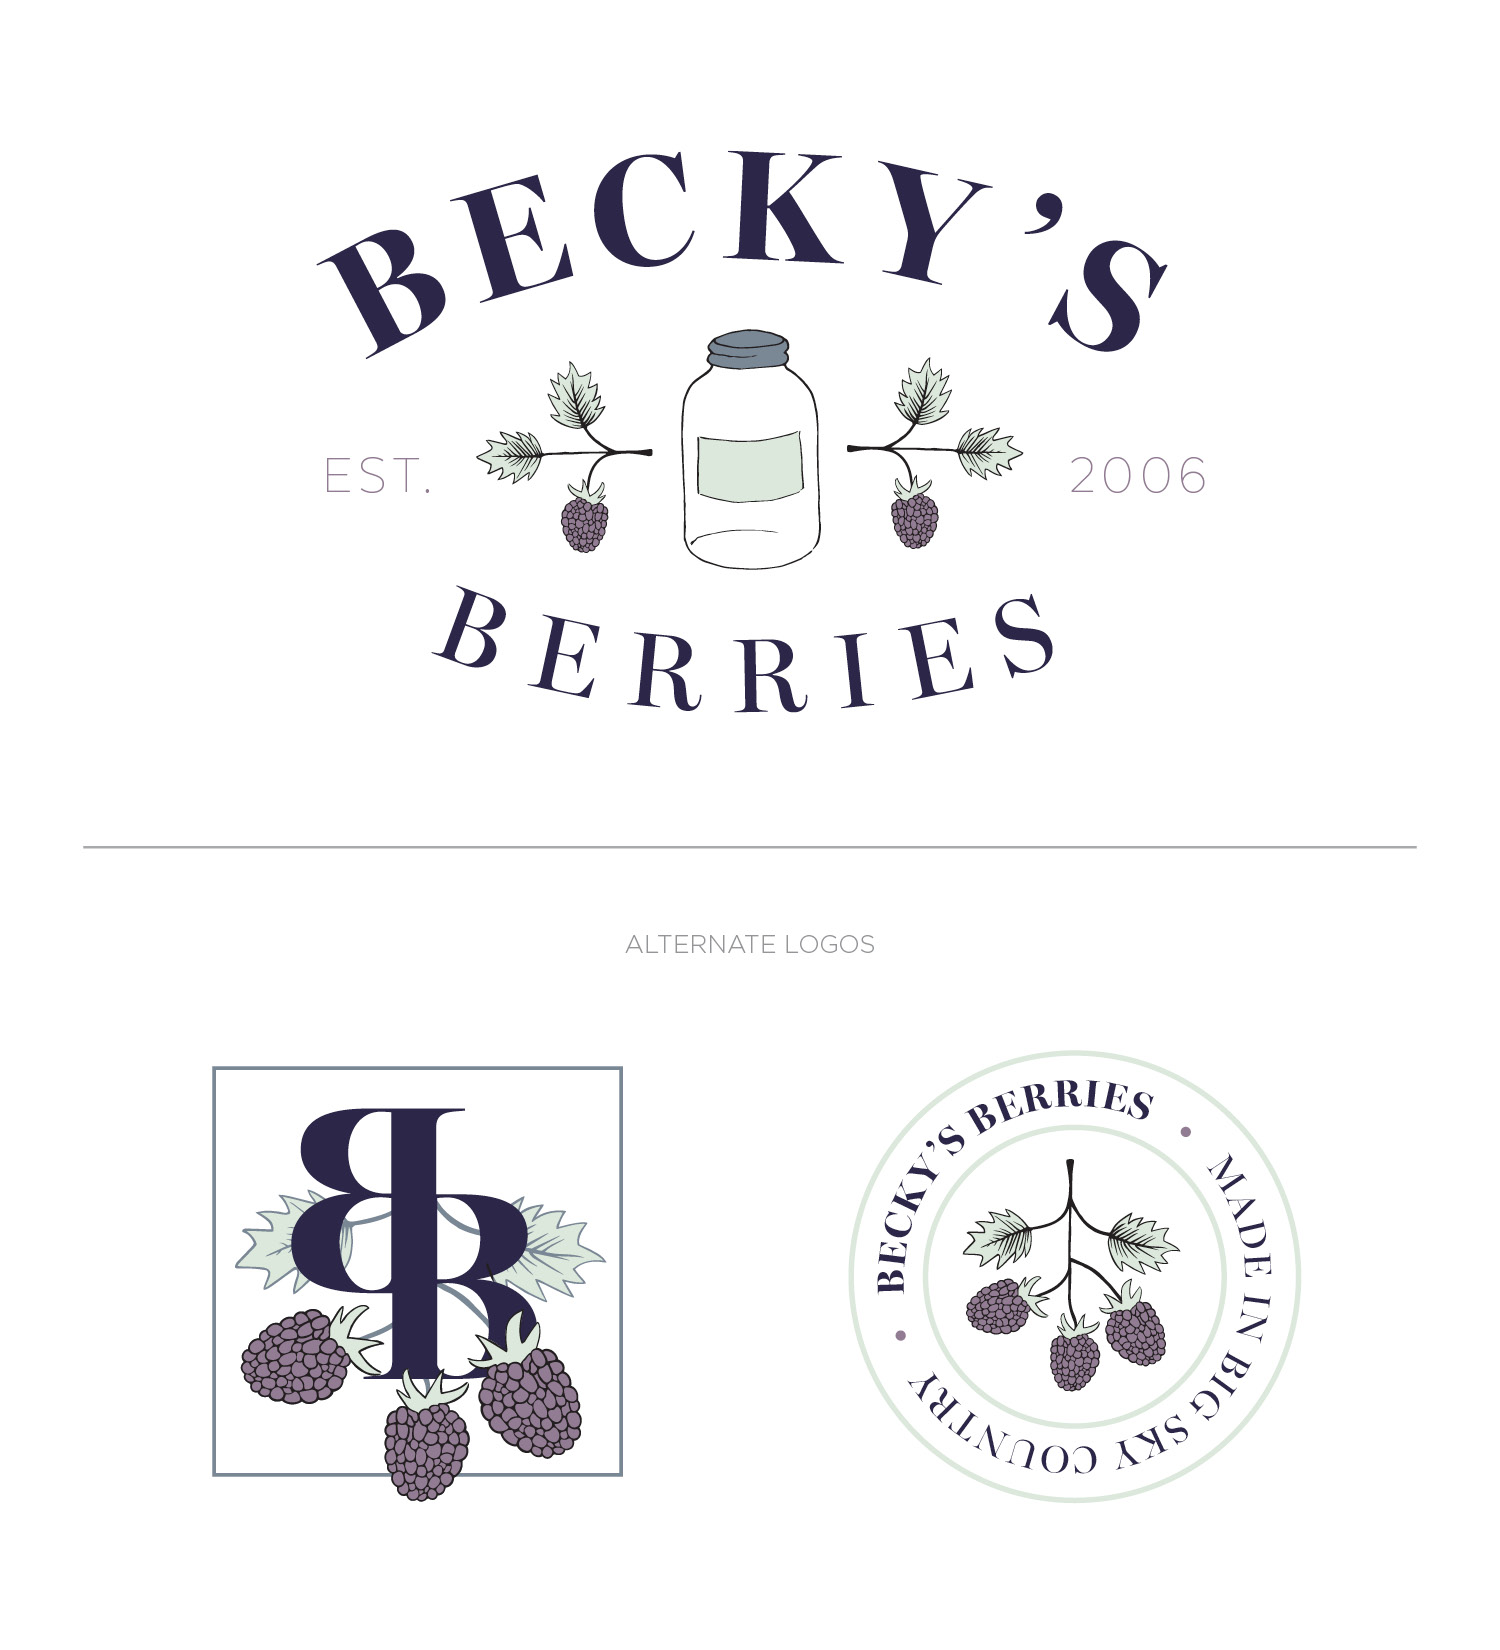 Becky's Berries conceptual primary and alternate logo design by Gillian Tracey Design